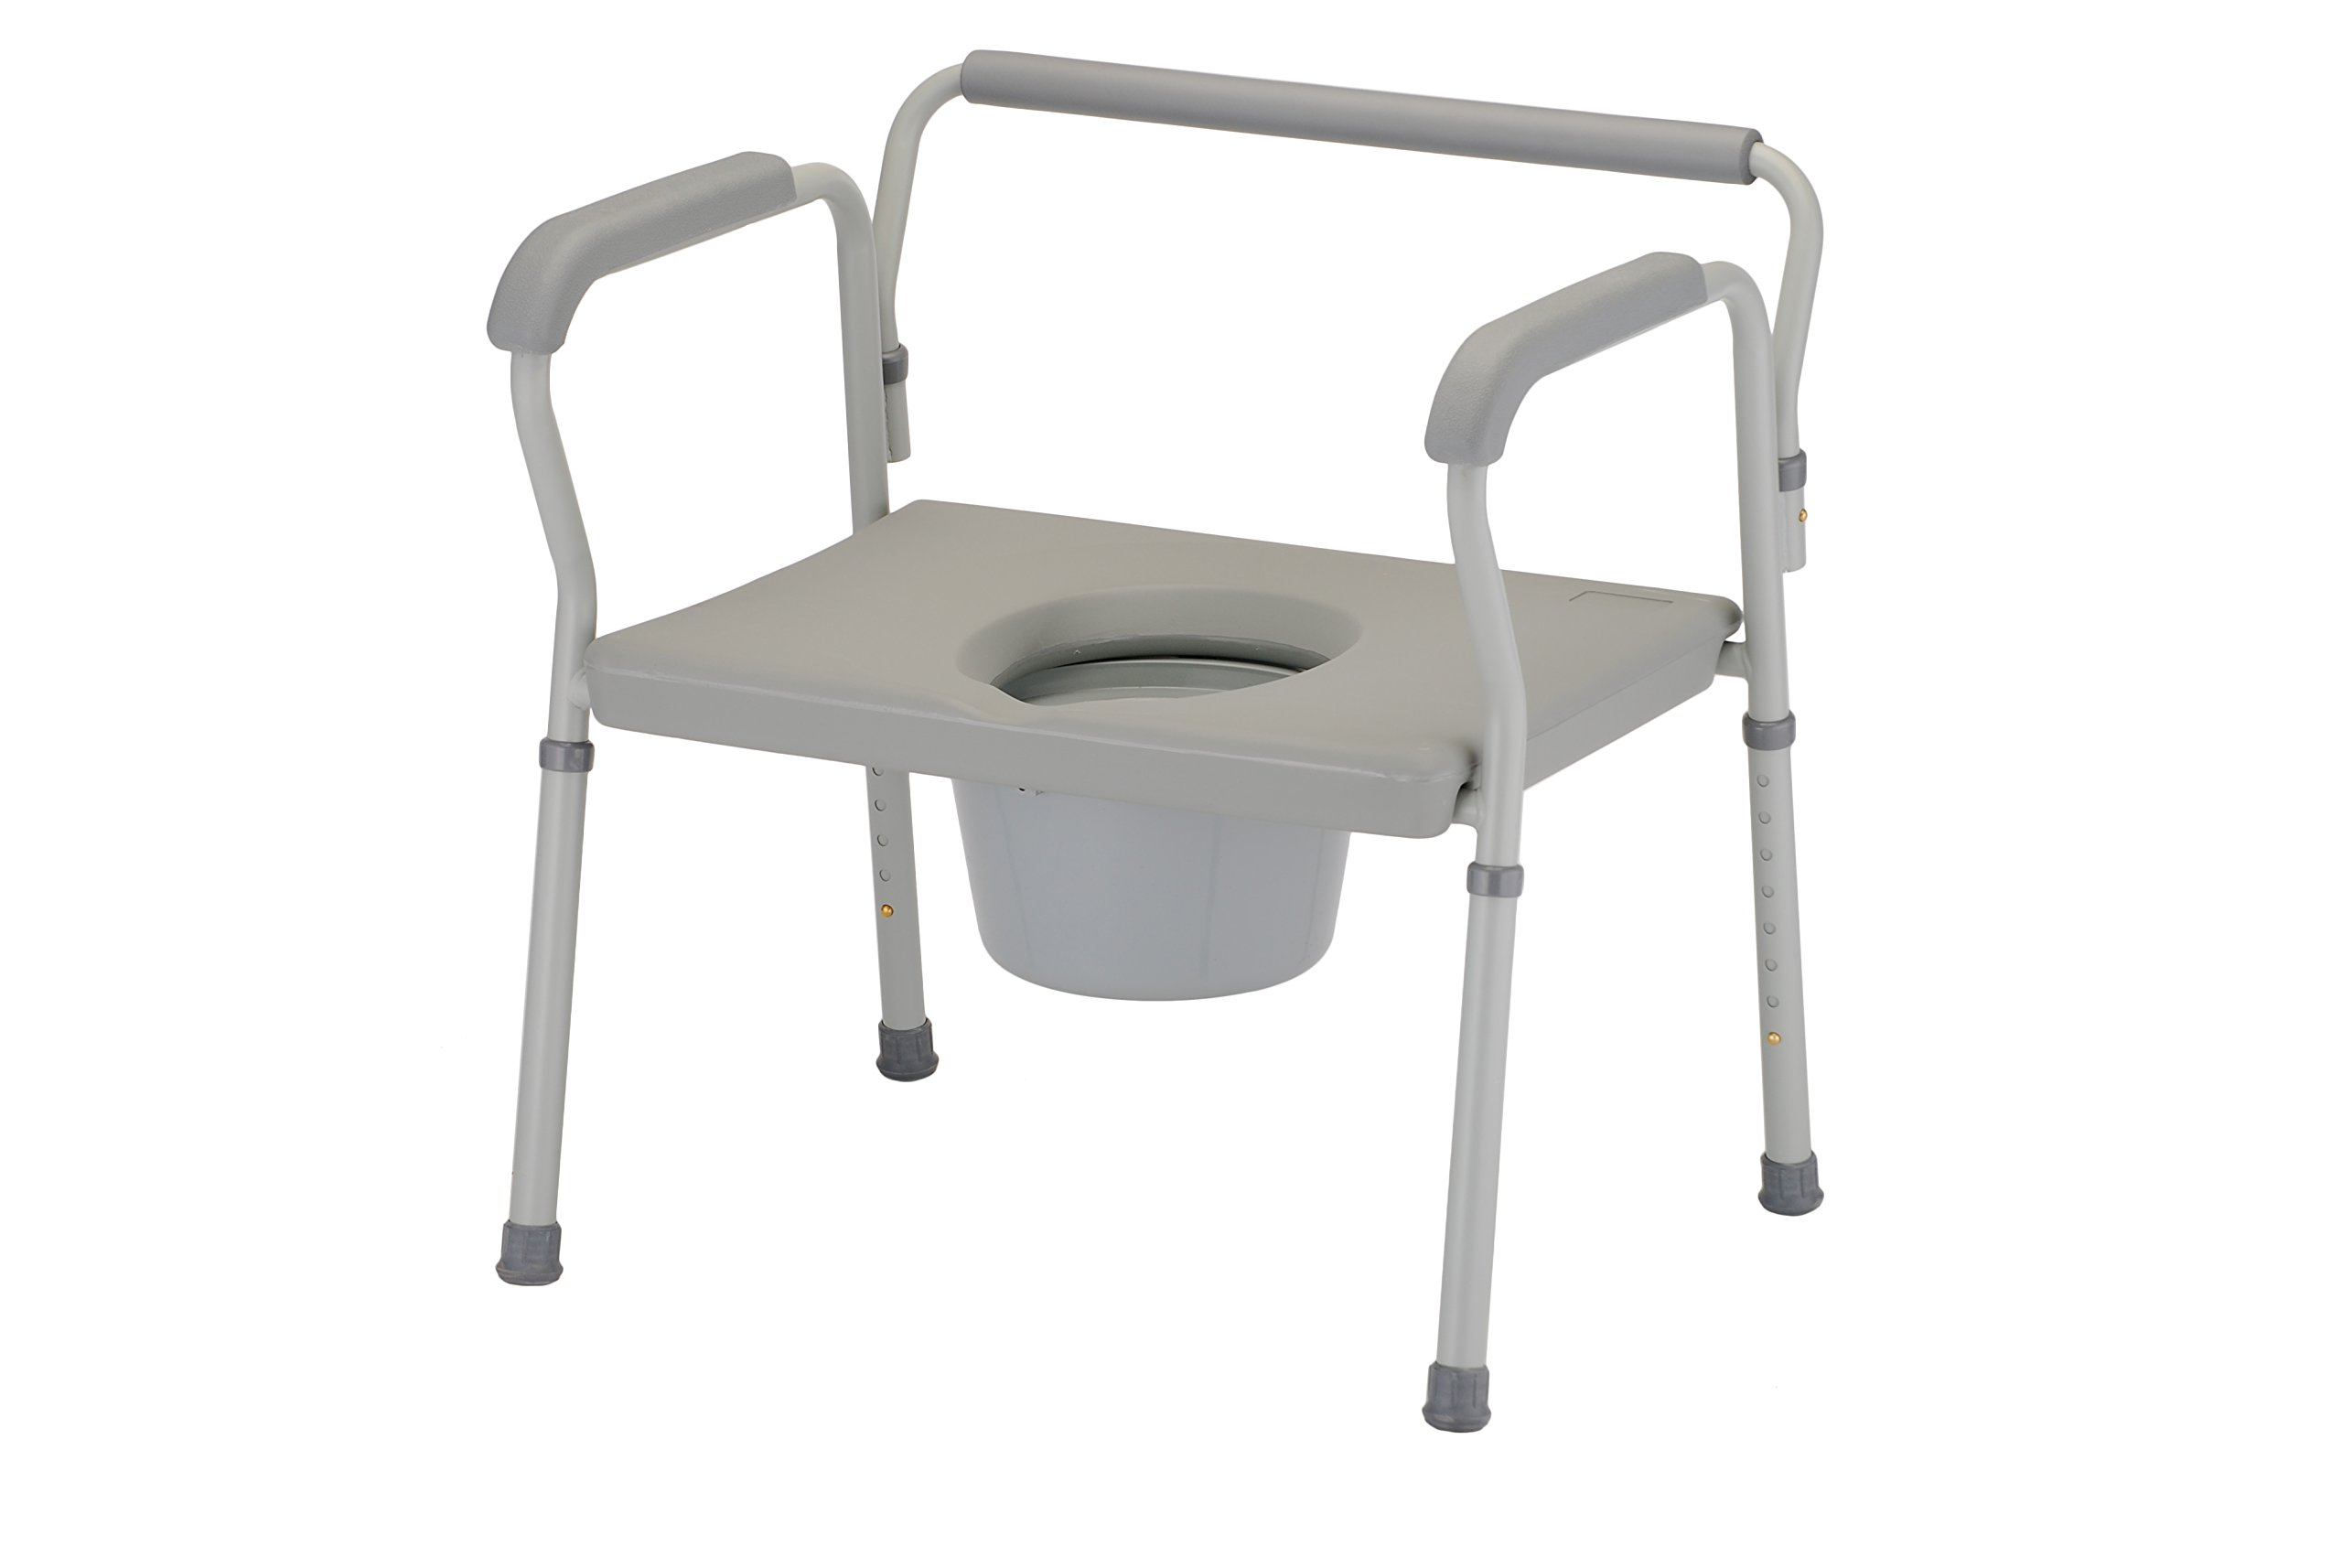 NOVA Medical Products Heavy Duty Commode with Extra Wide Seat, Gray, 19.5 Pound